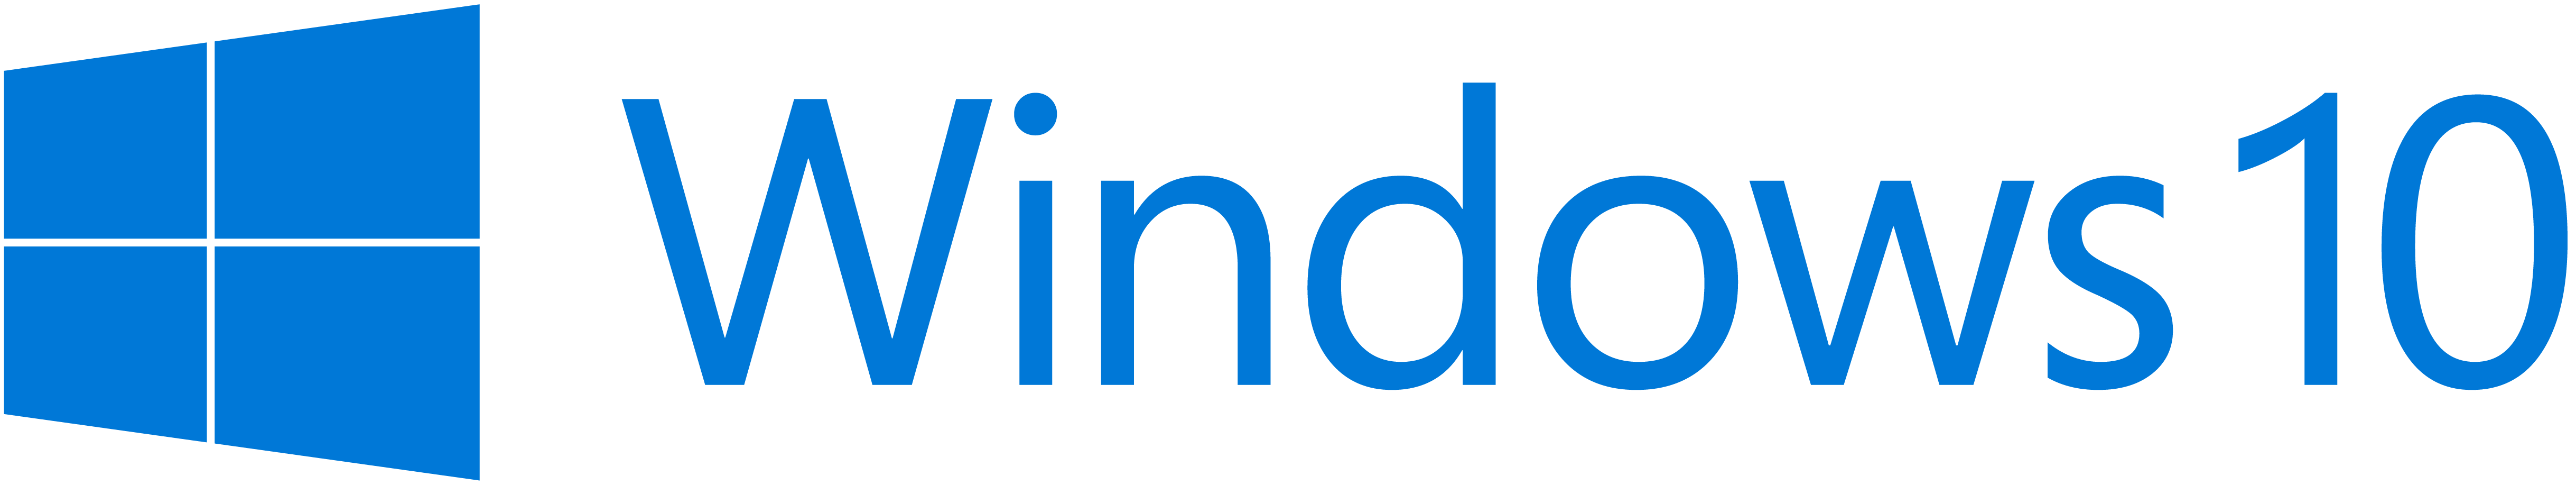 Windows10 Full Blue Logo